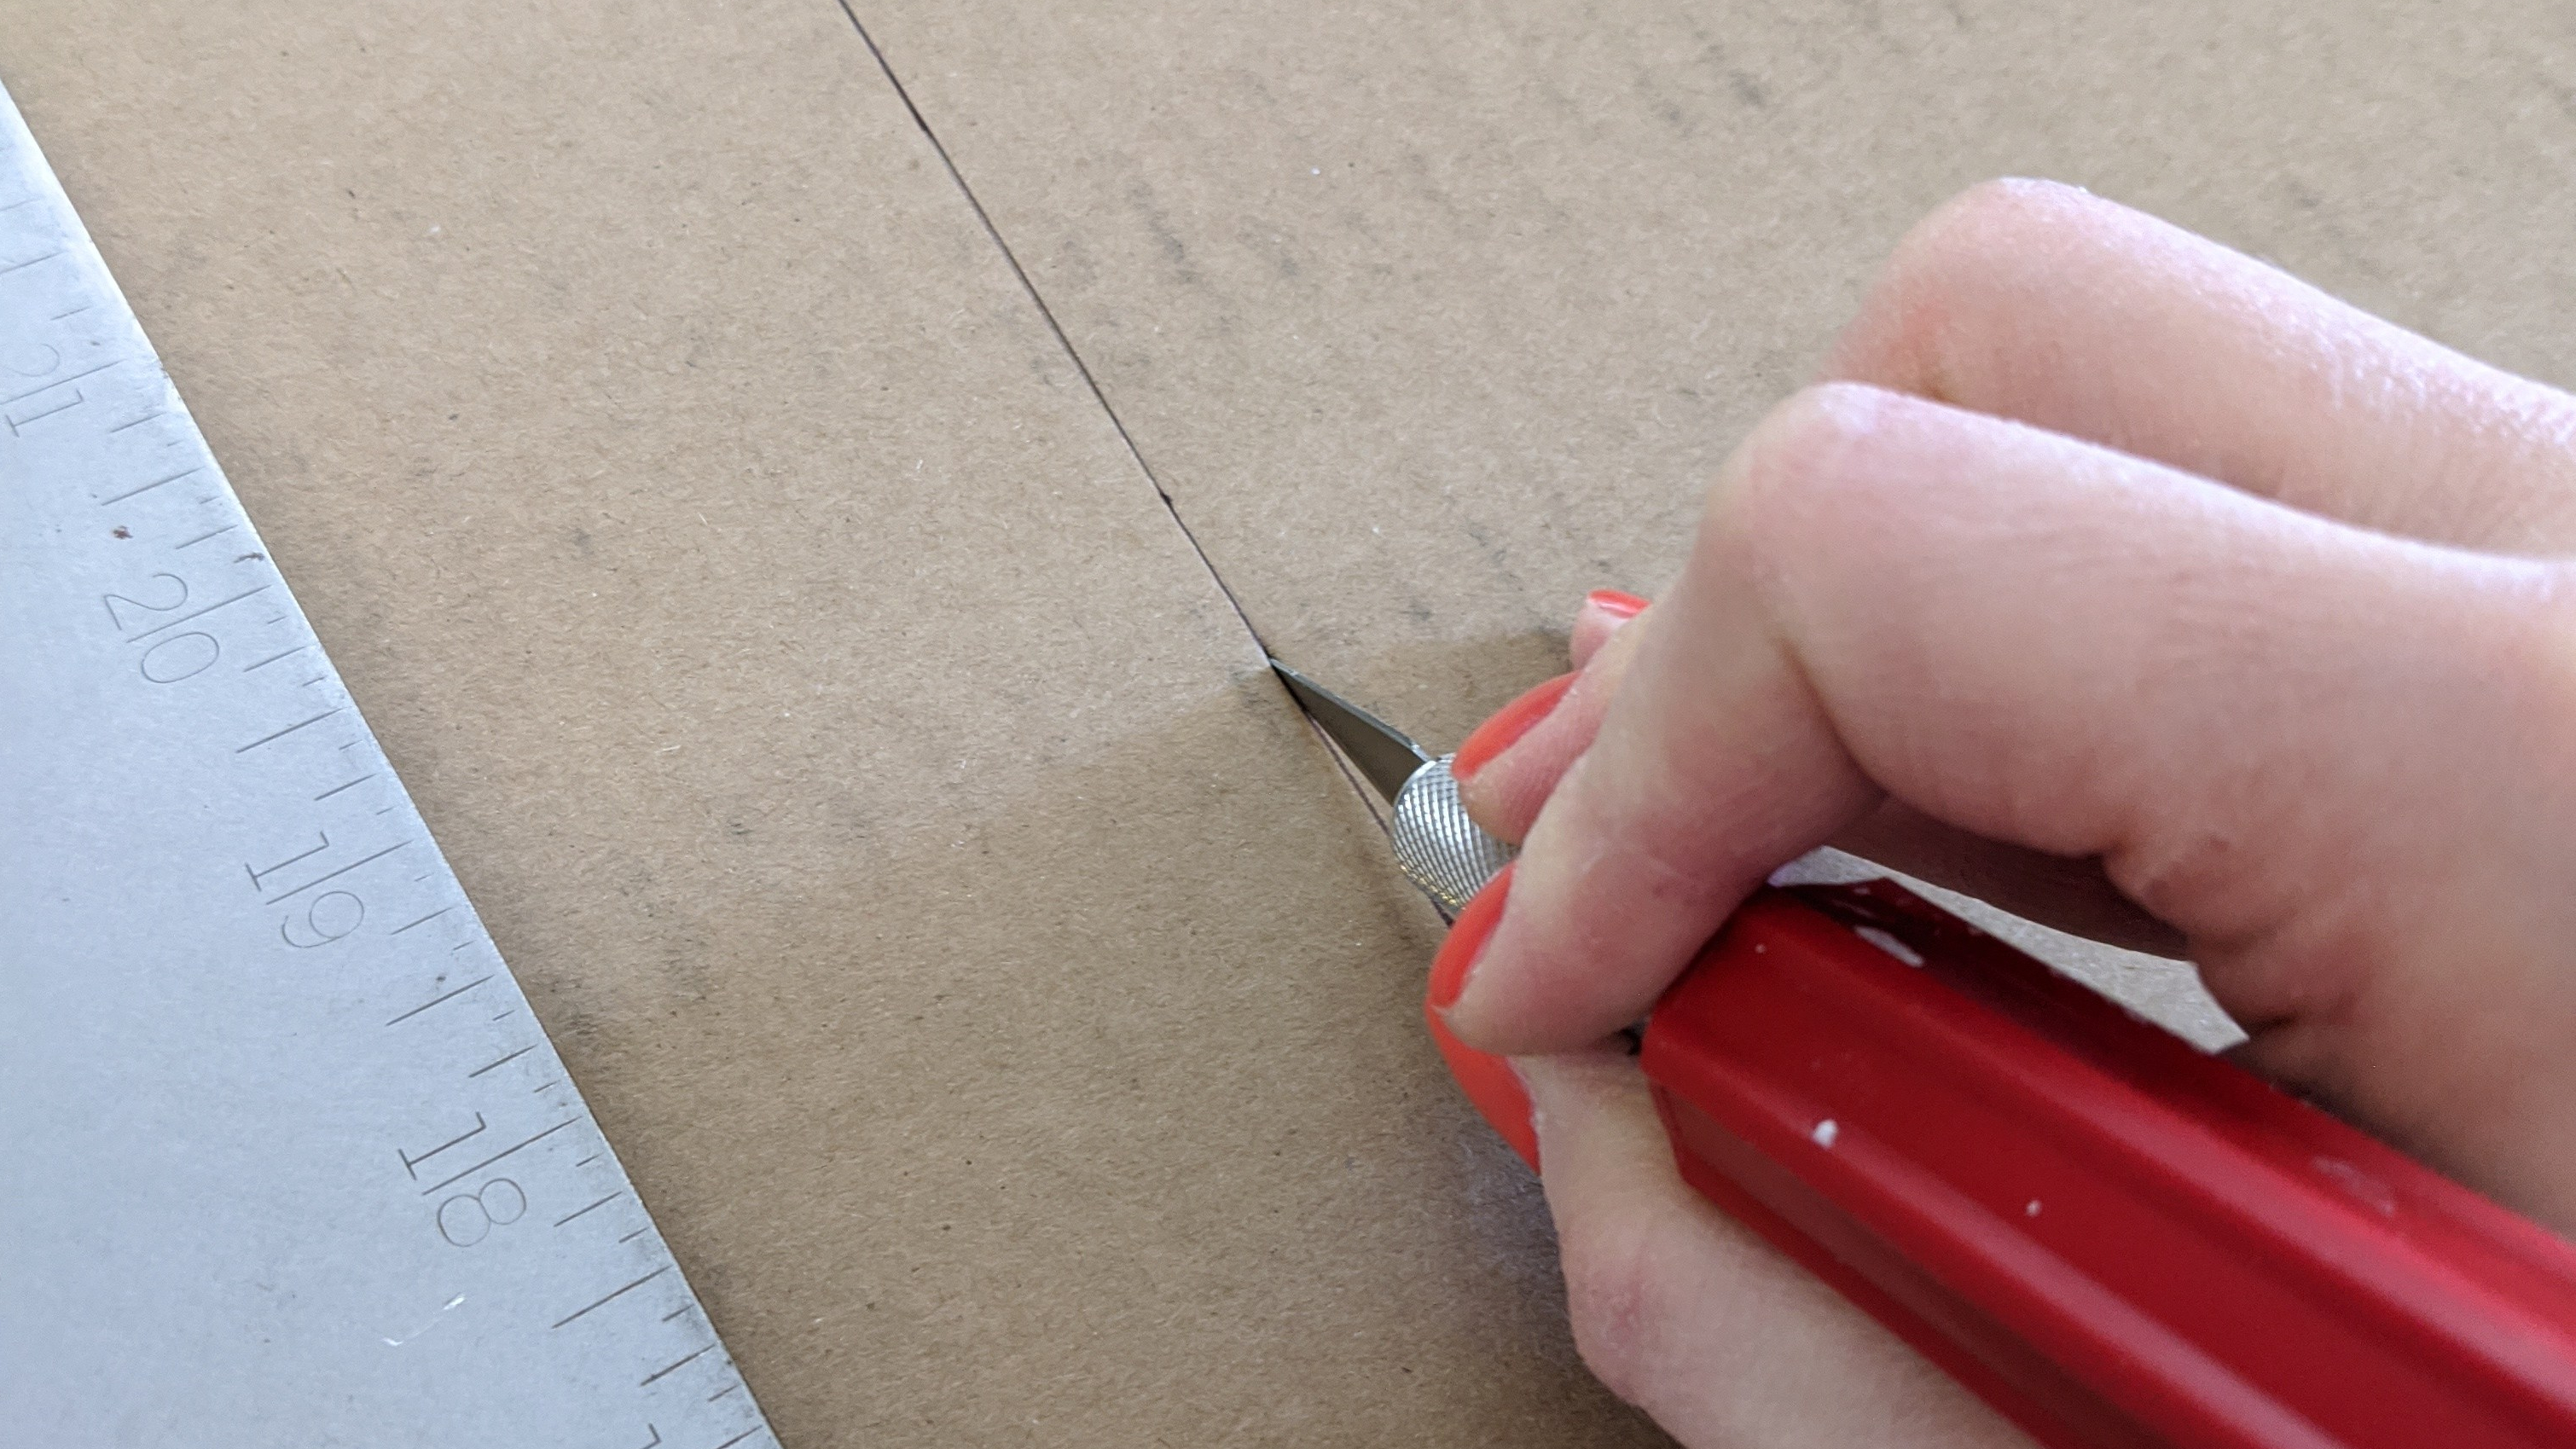 Cutting with the x-acto